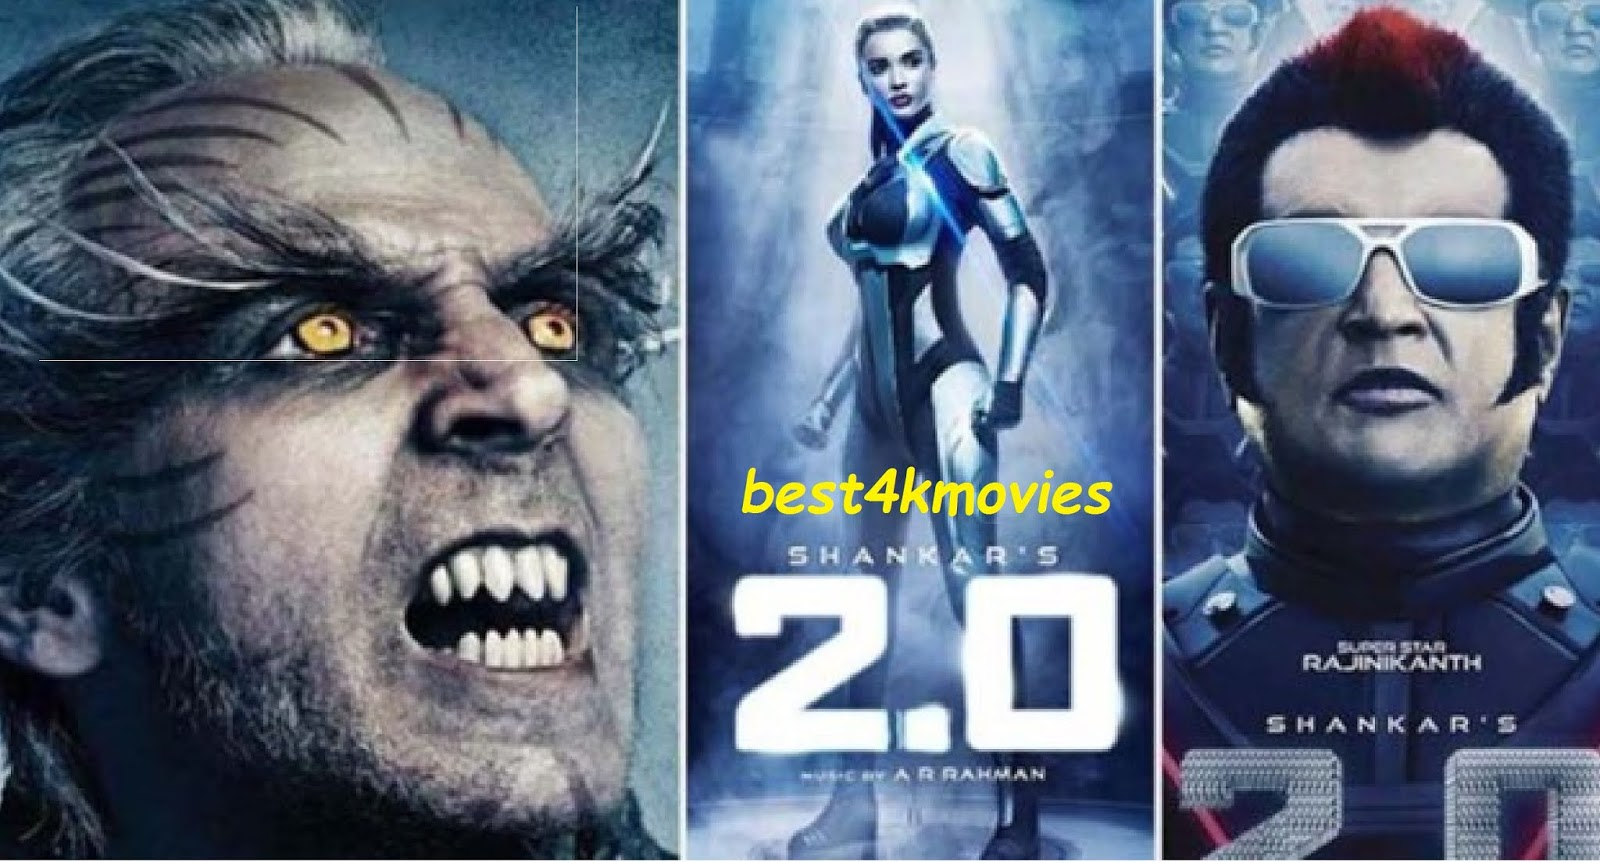 robot 2.0 hindi 2018 full hd movie download hd movie 720p - download